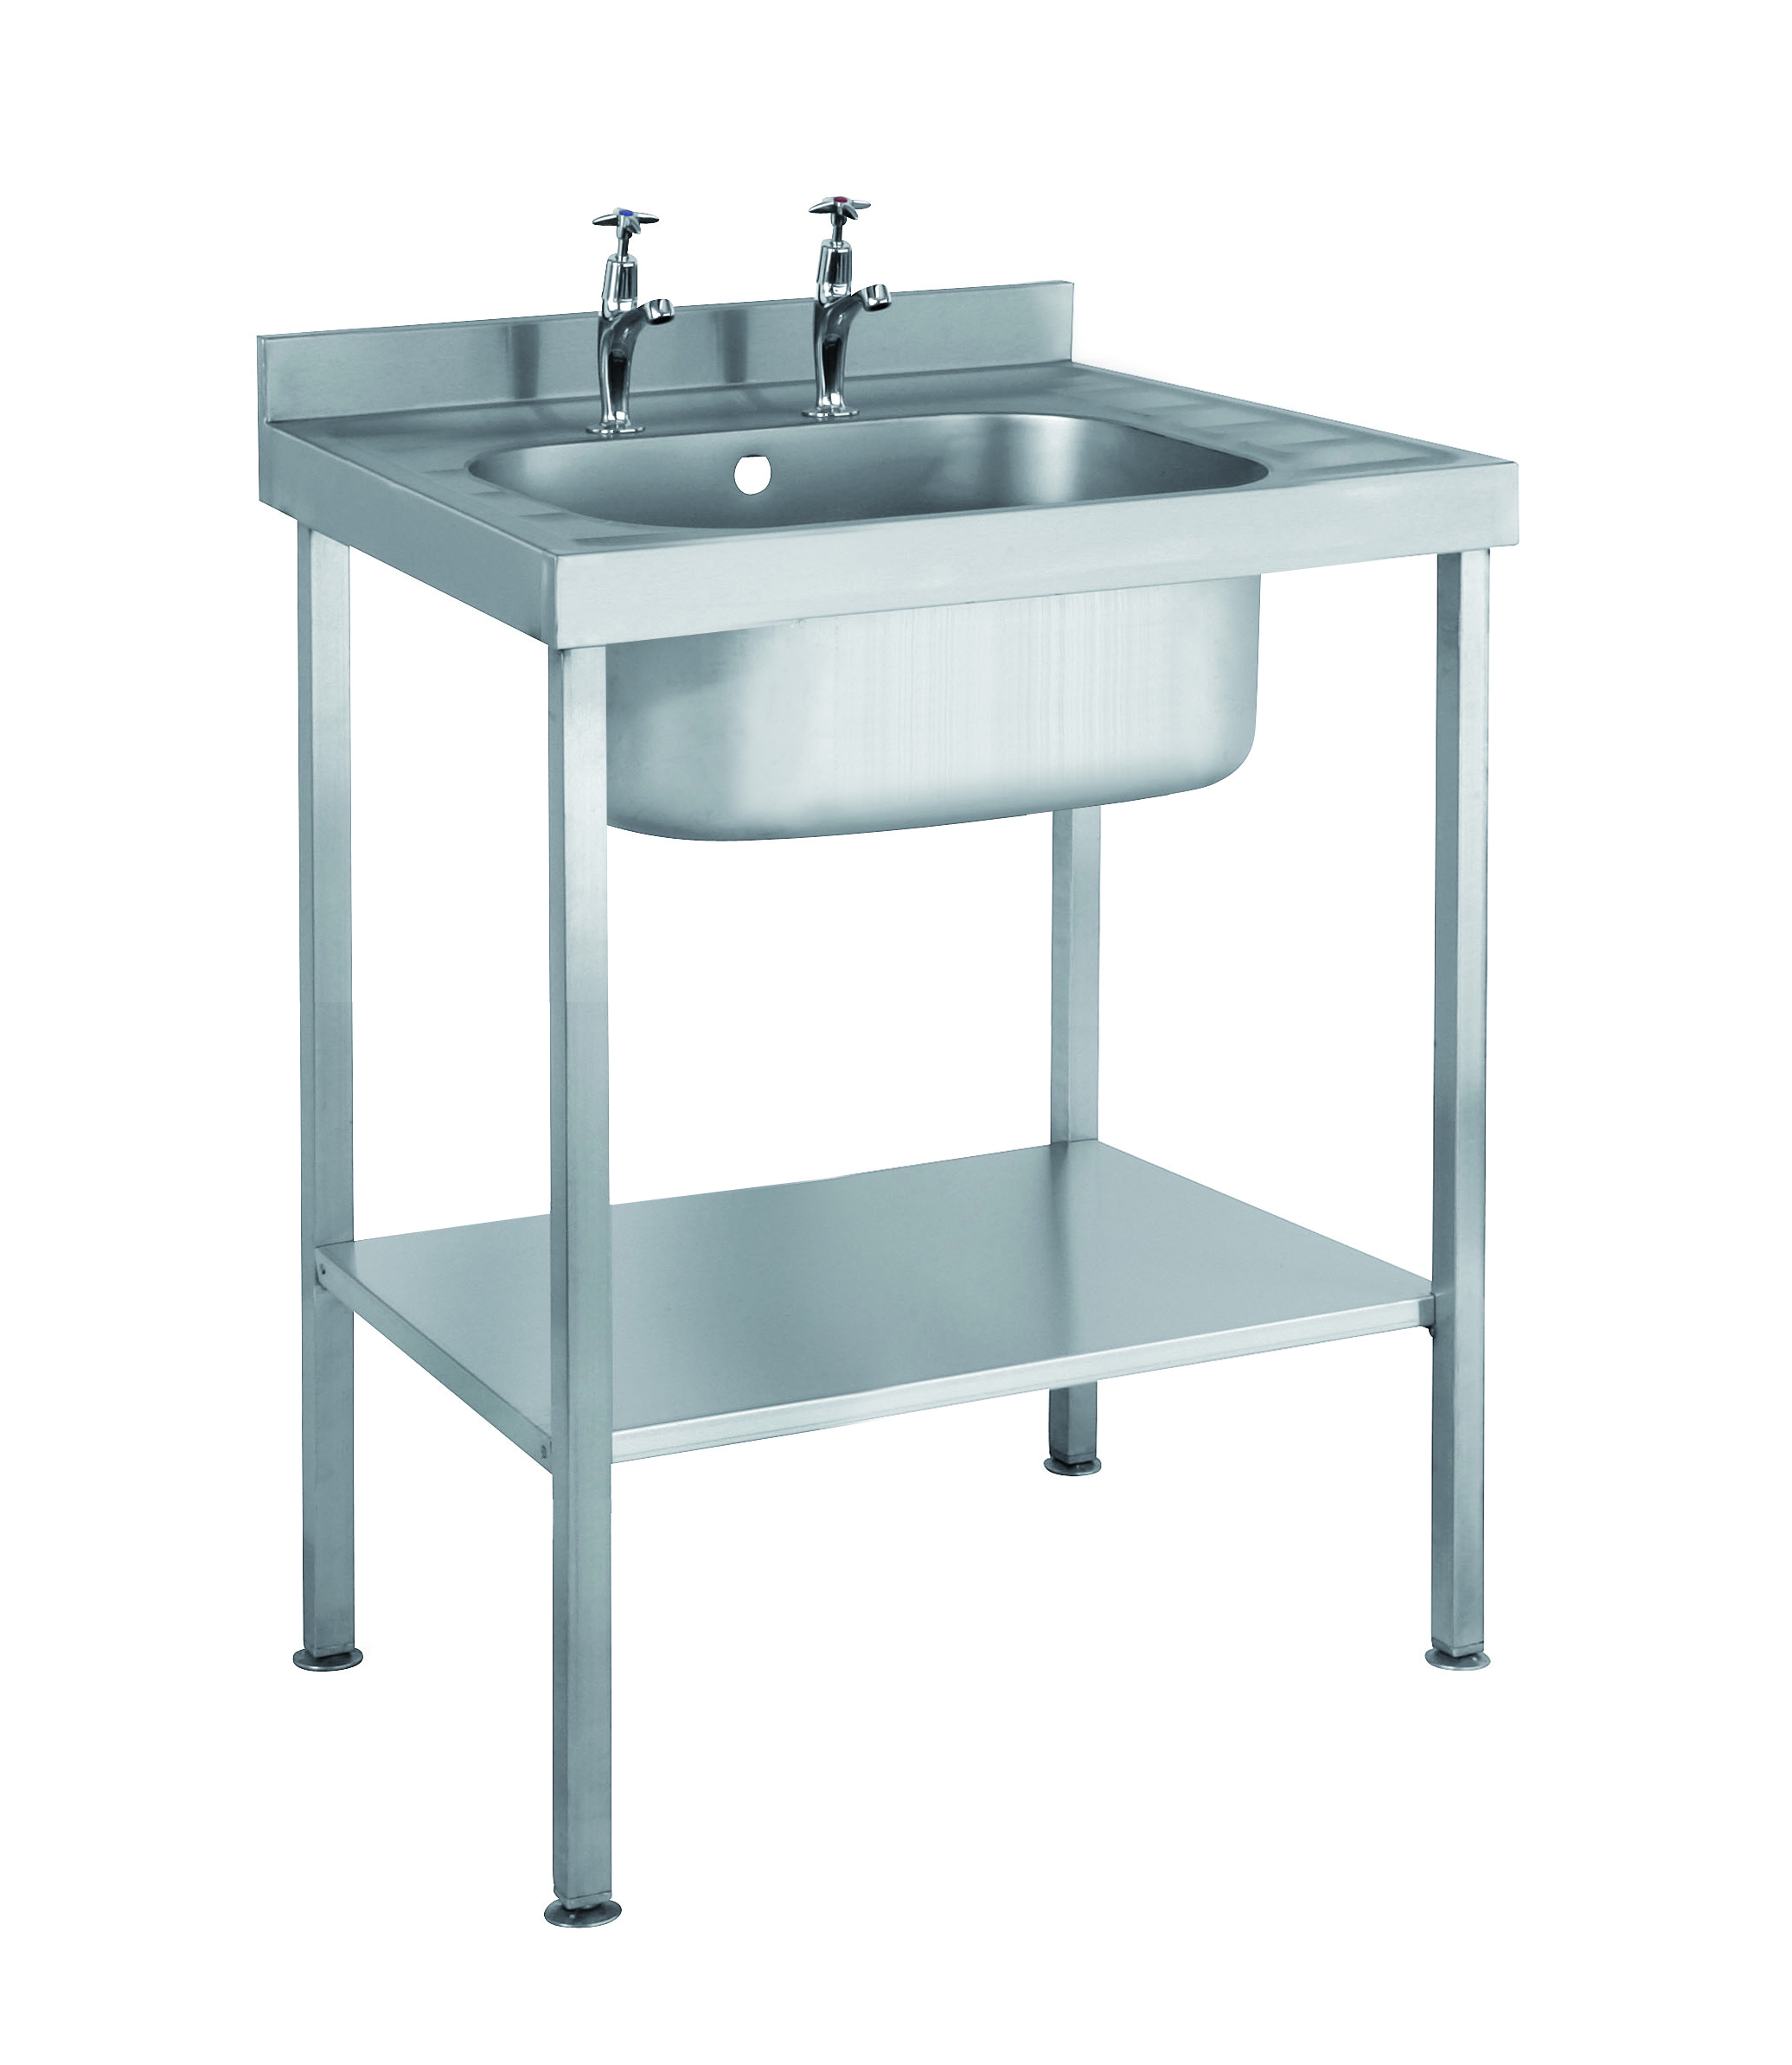 Commercial Stainless Steel Sinks from CE Online | Catering Equipment ...